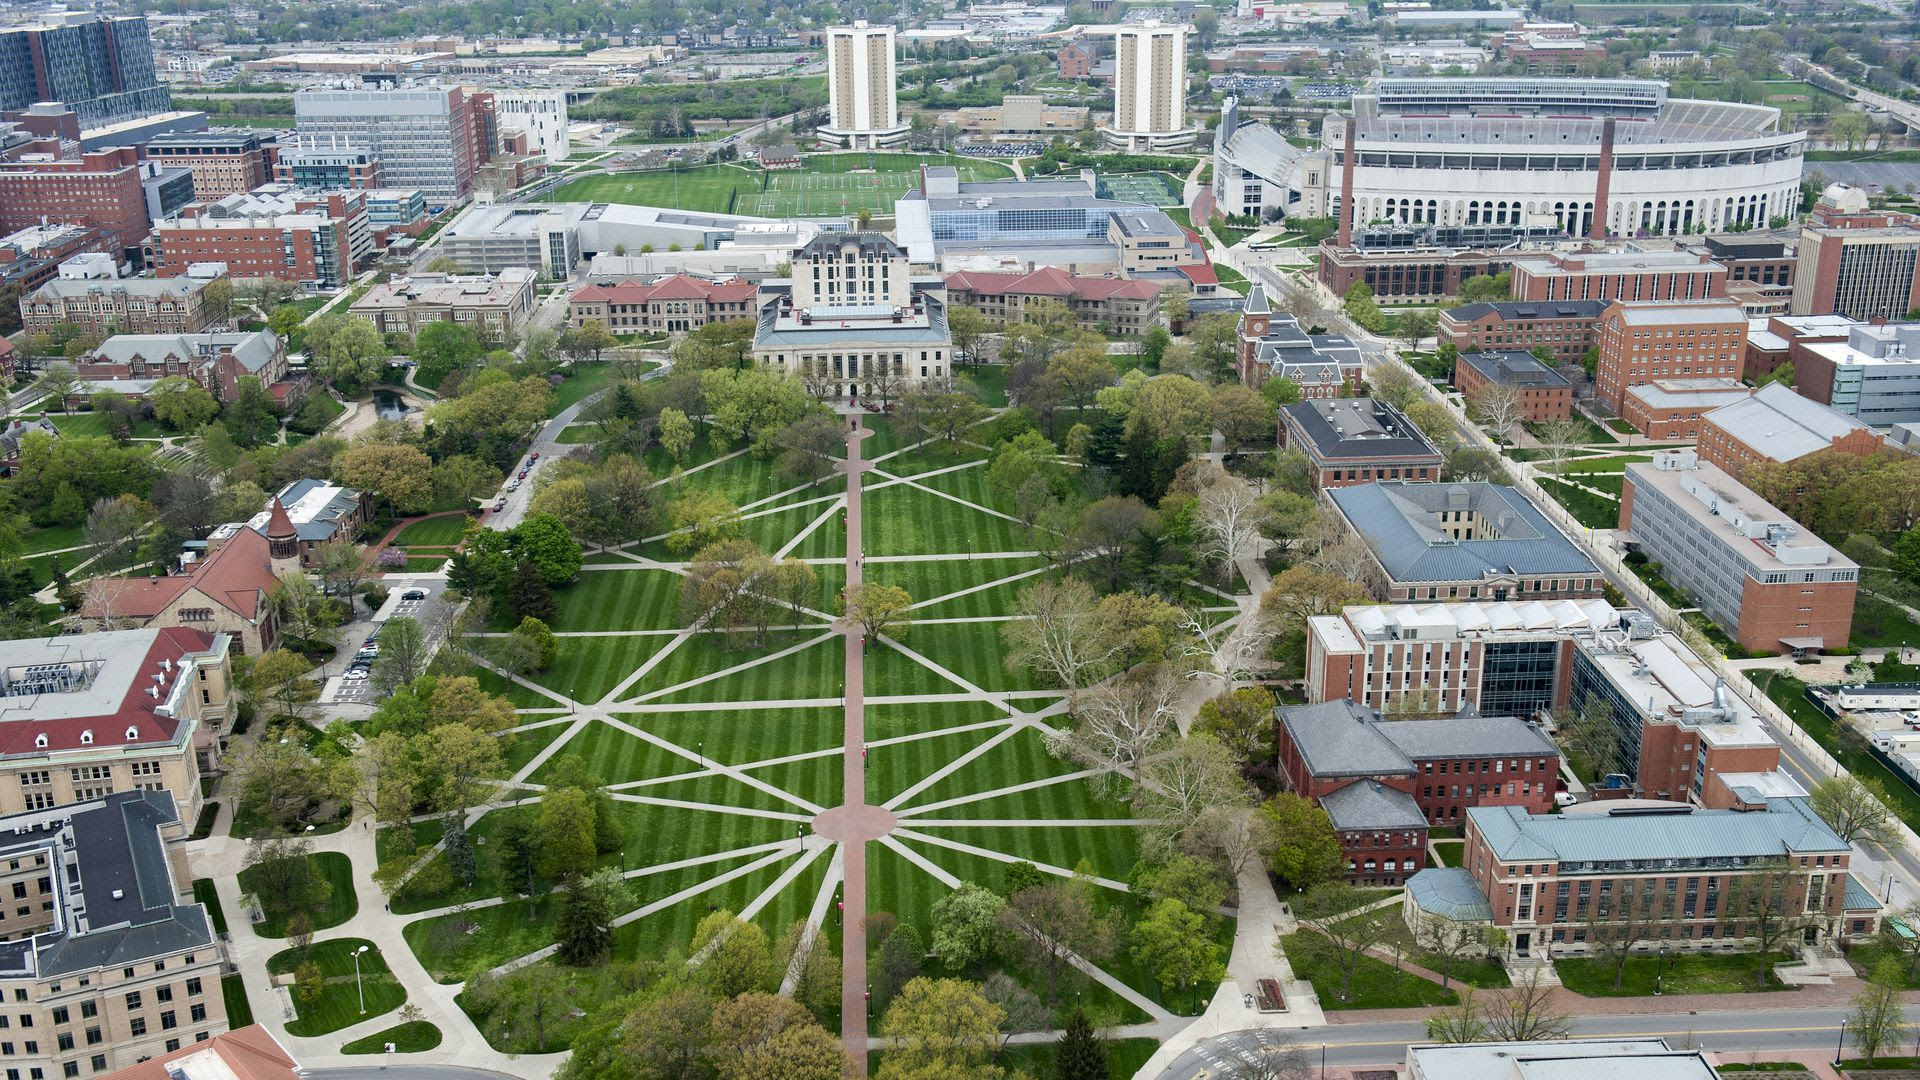 A view from above the Oval on Ohio State University's campus.